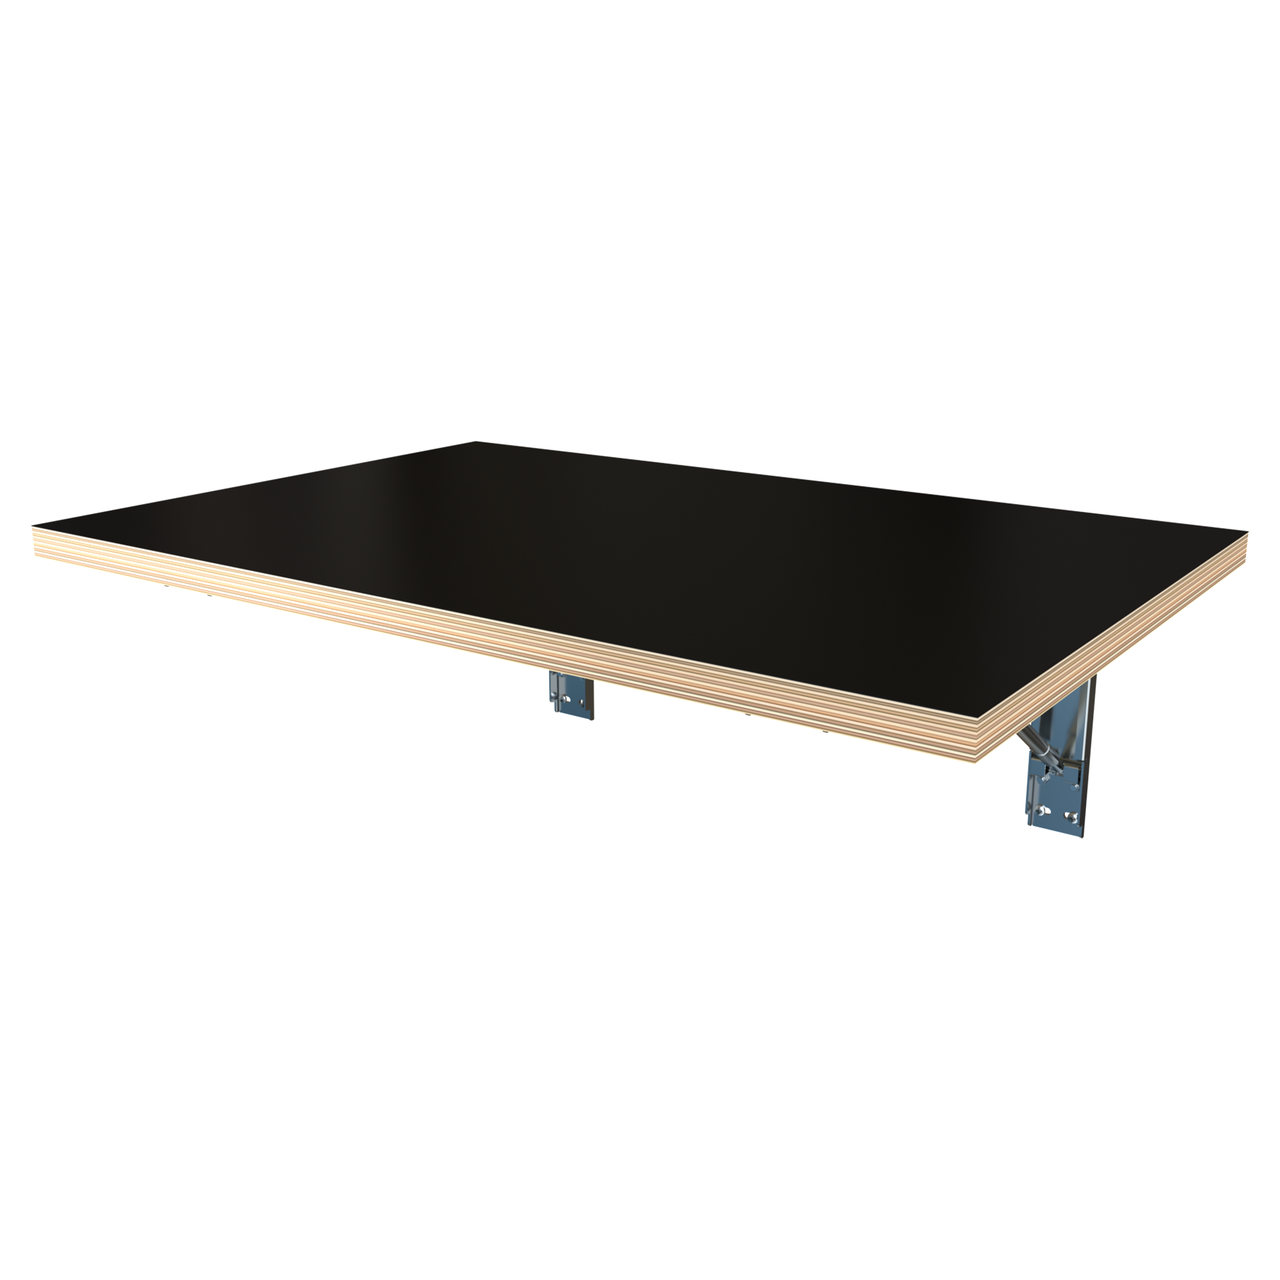 Black decorply wall folding table with a pair of our FDP brackets attached